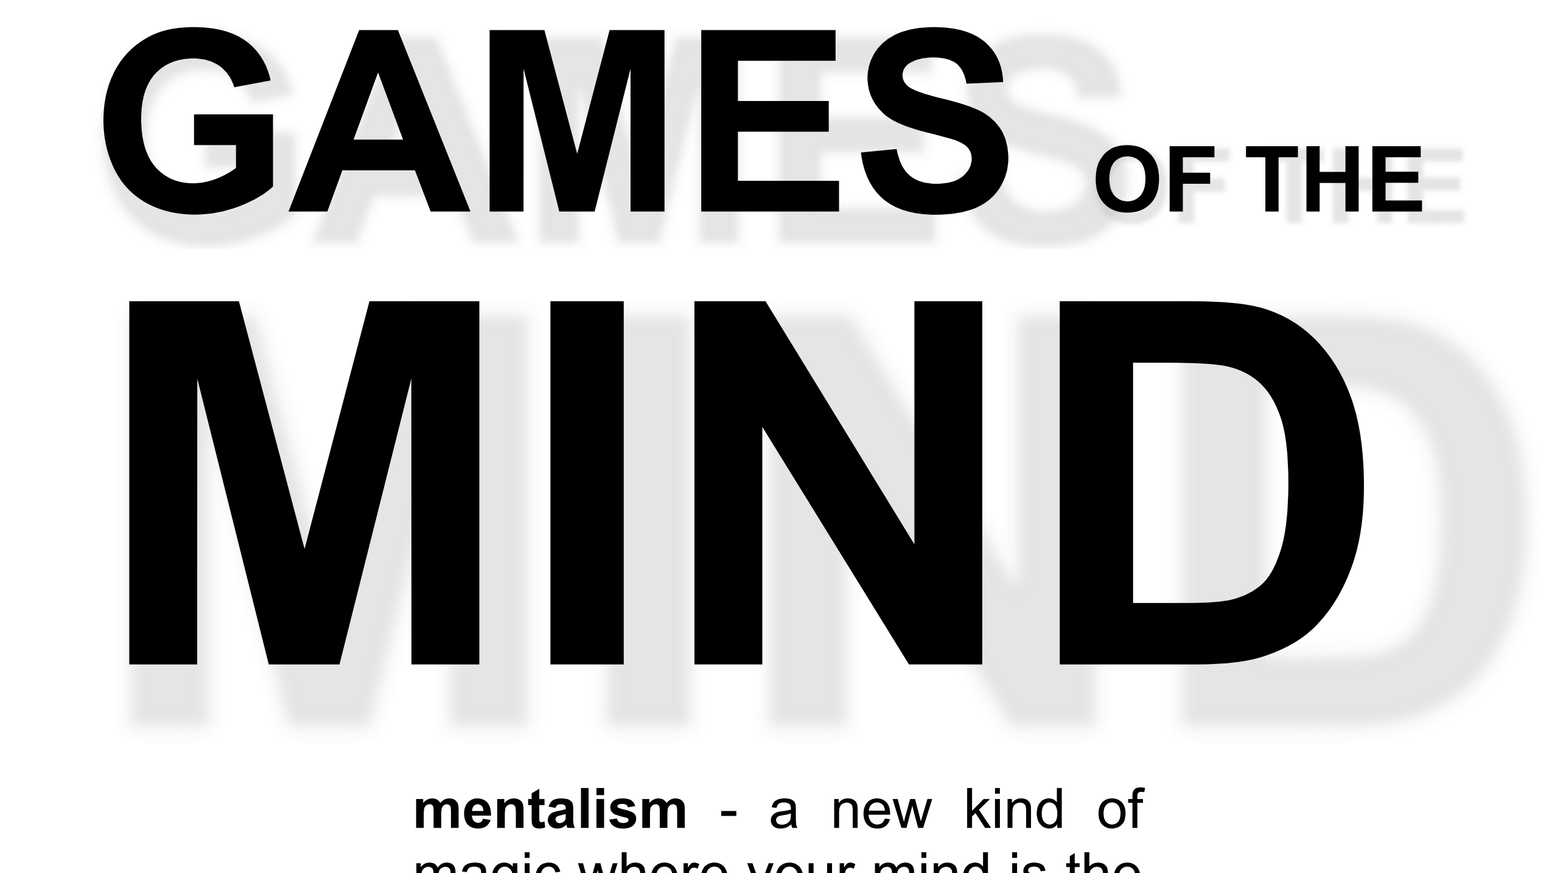 Games of the Mind by Frank Bright — Kickstarter